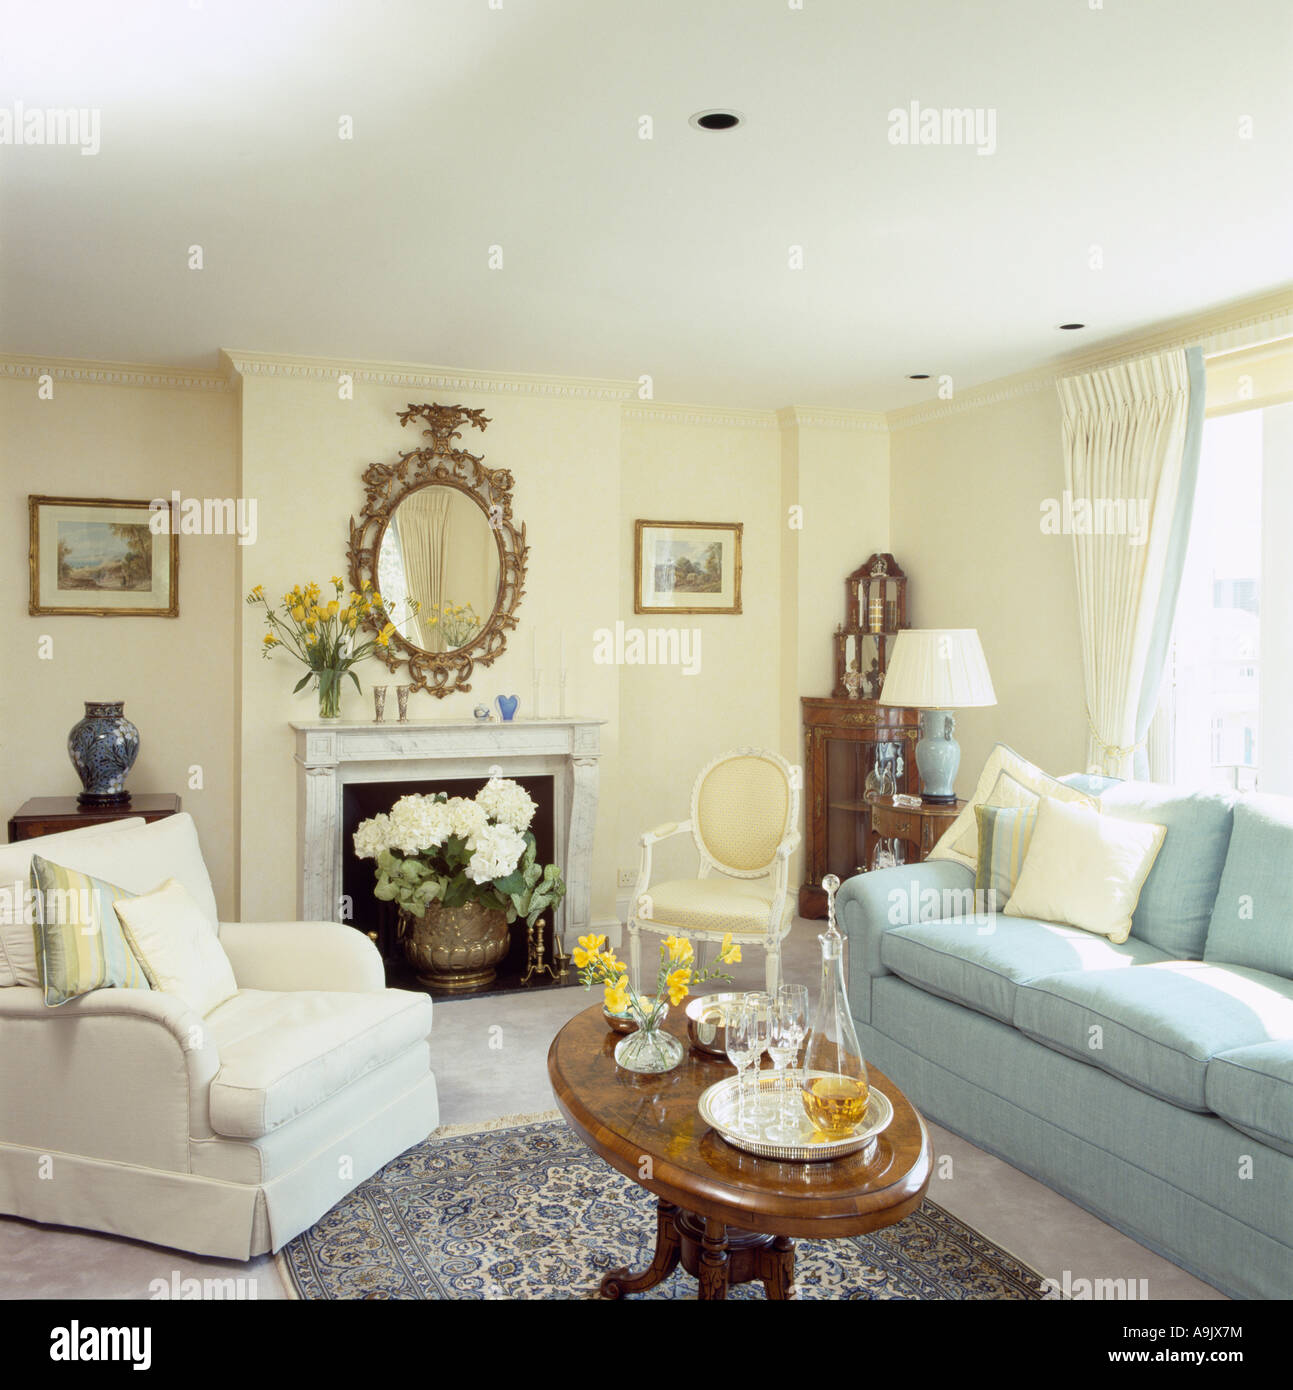 White Armchair And Pastel Blue Sofa In Pale Yellow Sitting Room With